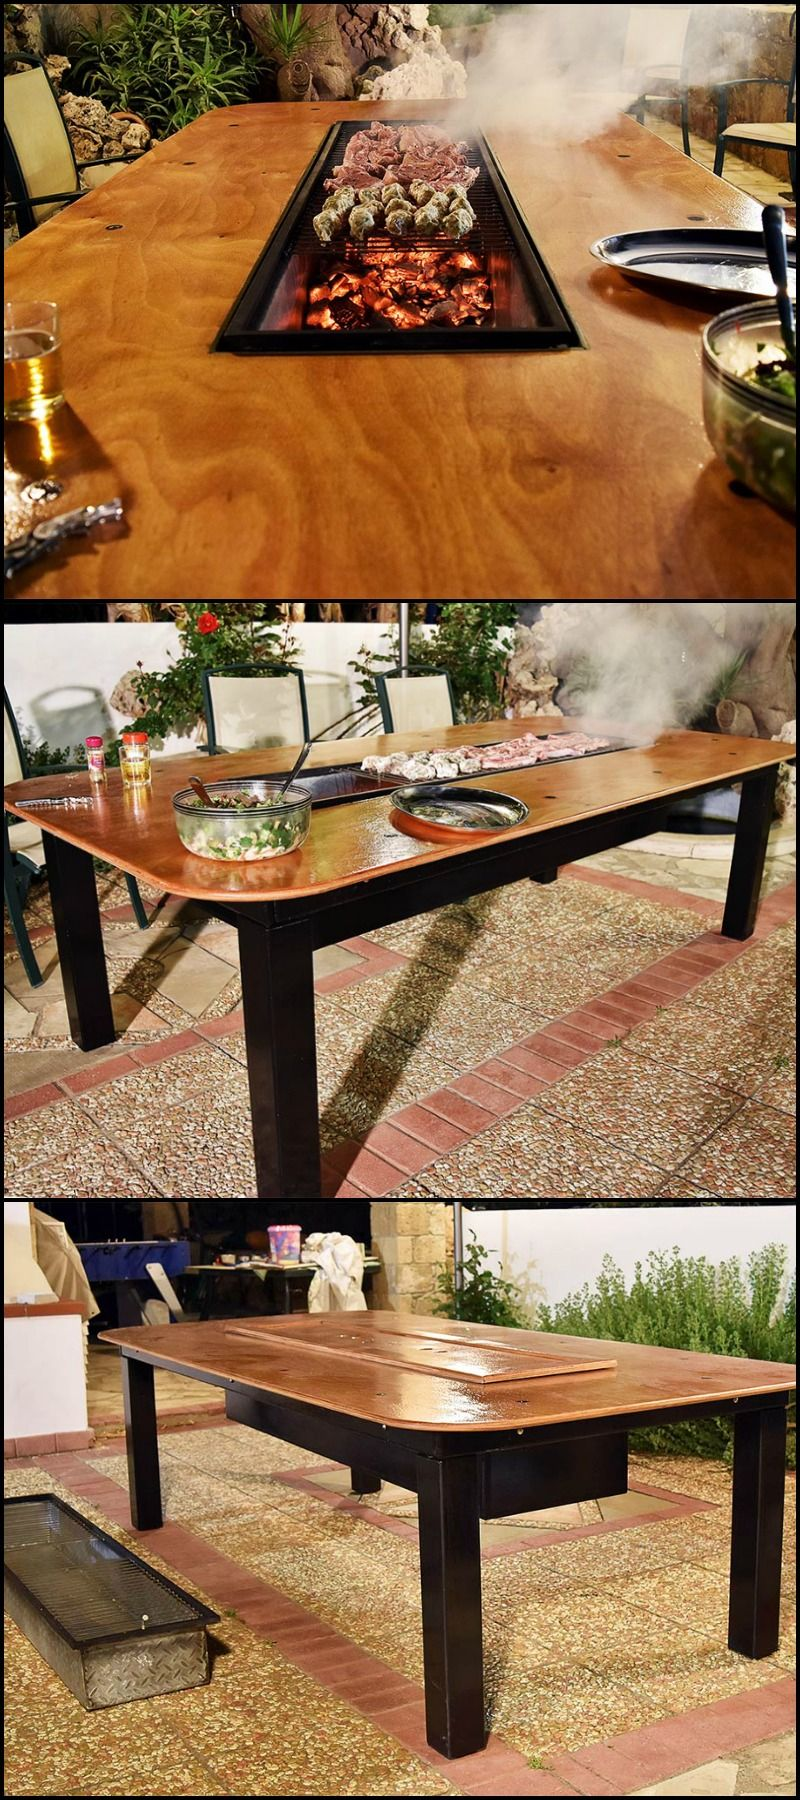 how to build a barbecue grill and table combo | gradina | pinterest